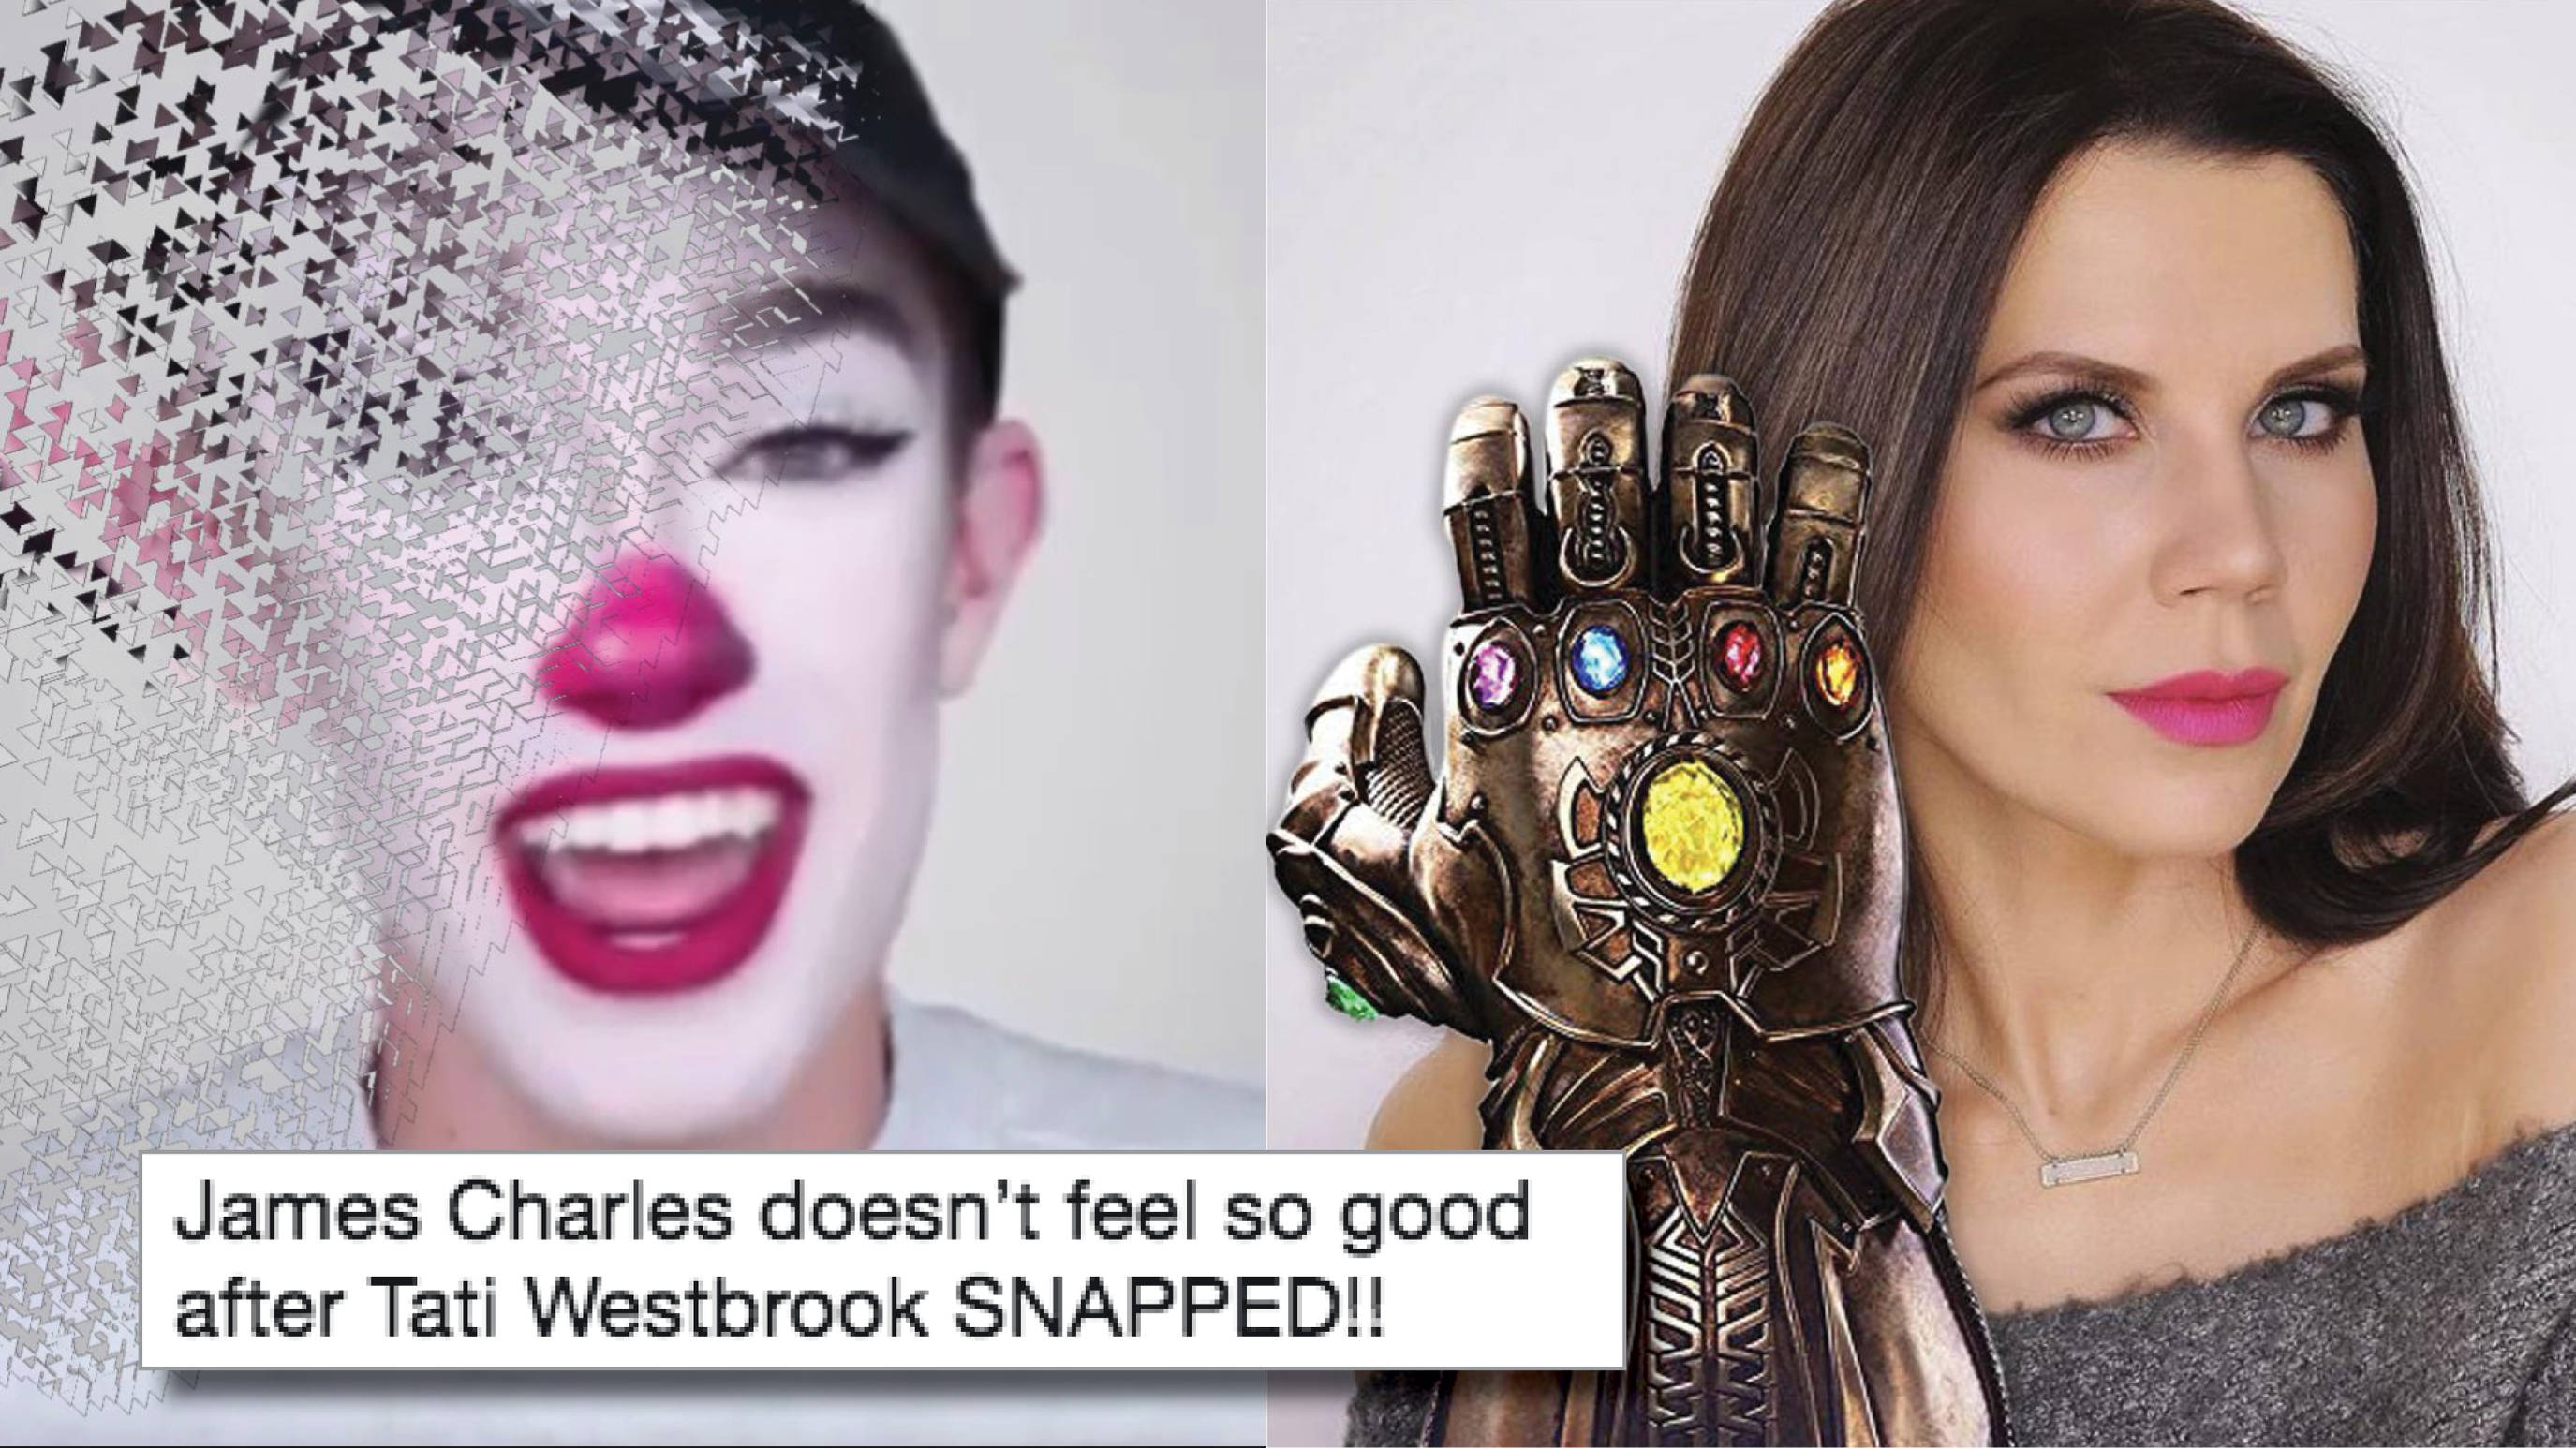 fd190bea504 The memes about the James Charles and Tati Westbrook drama are already out  of control - PopBuzz